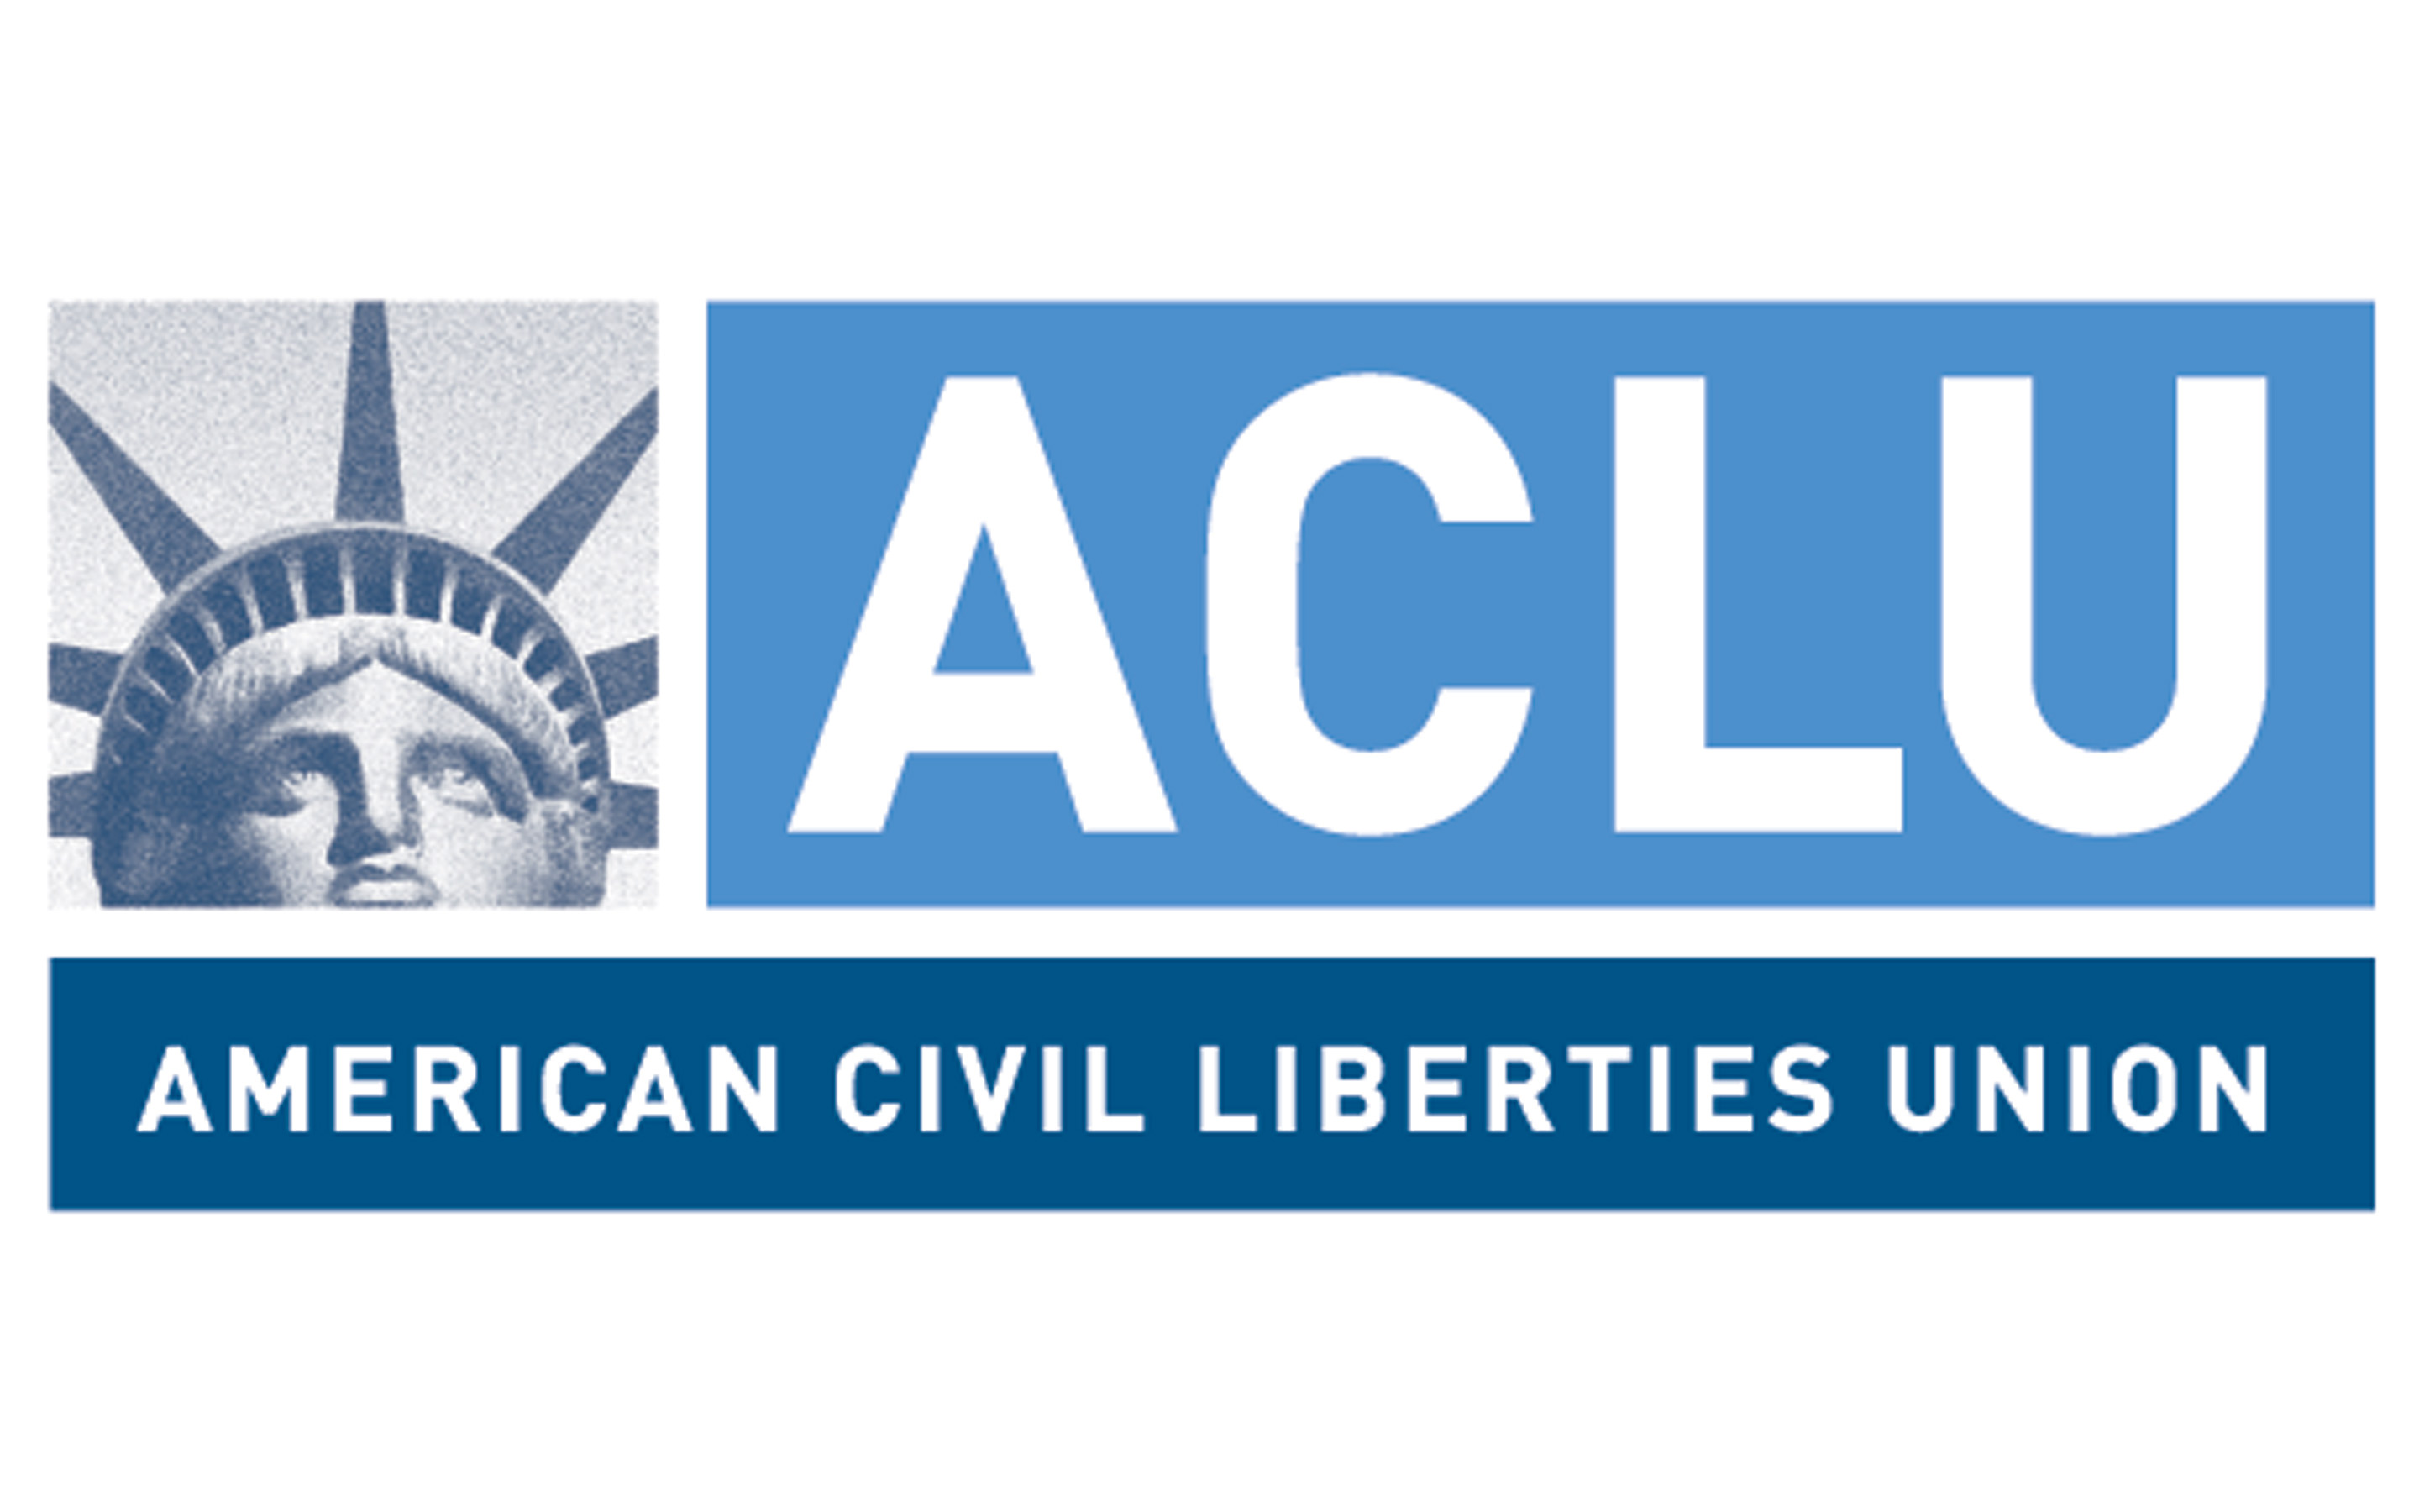 ACLU Claims Hollywood Sexism Should Be Investigated as Civil Rights Violation